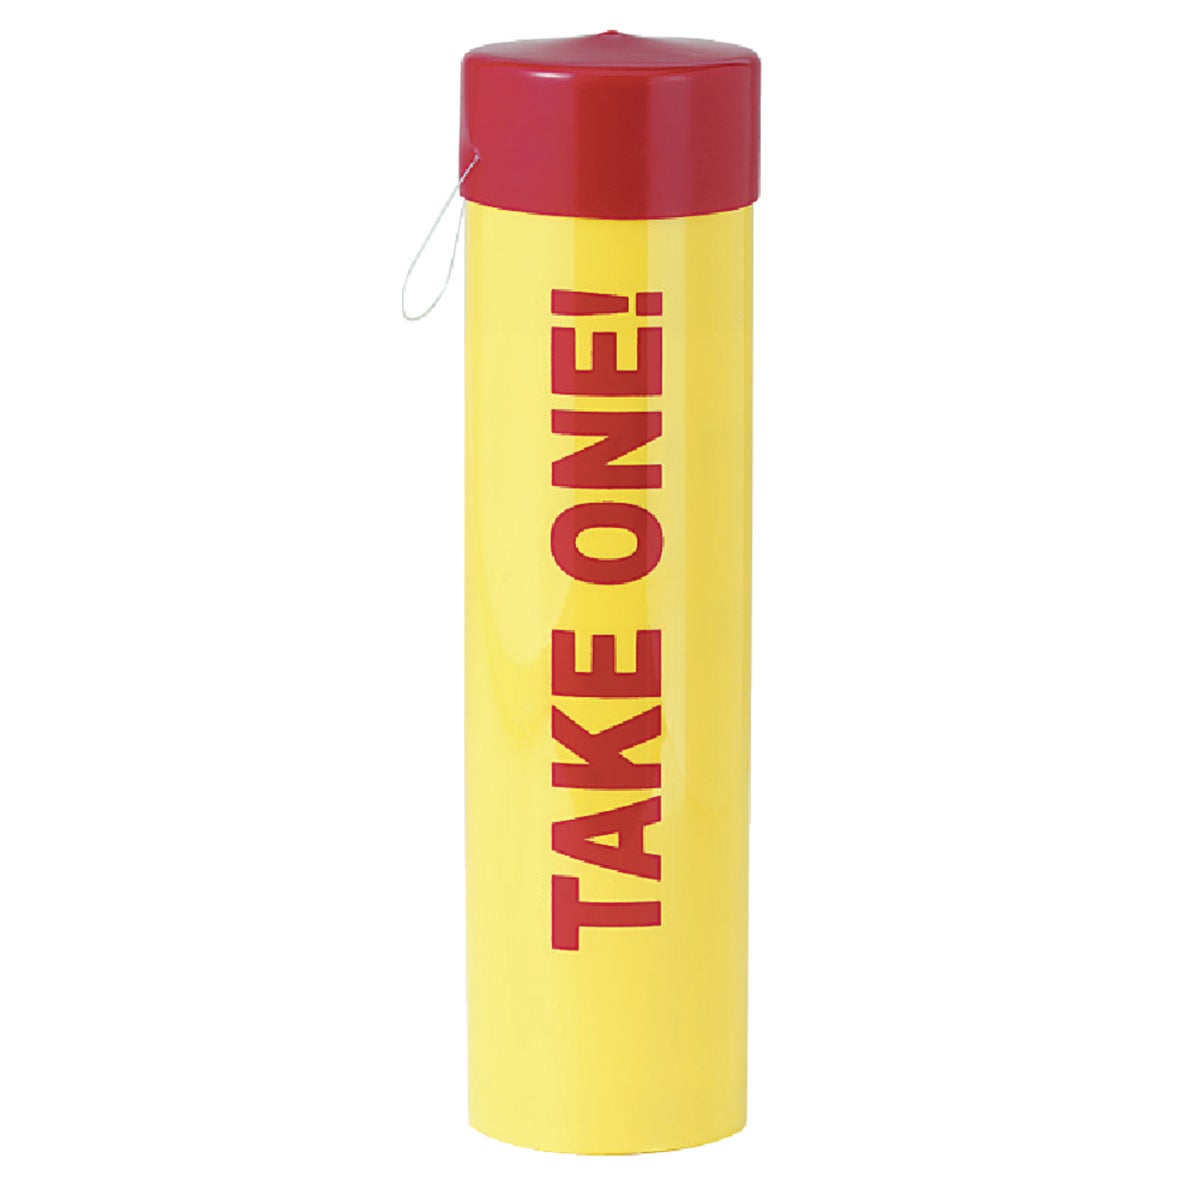 TAKE ONE TUBE